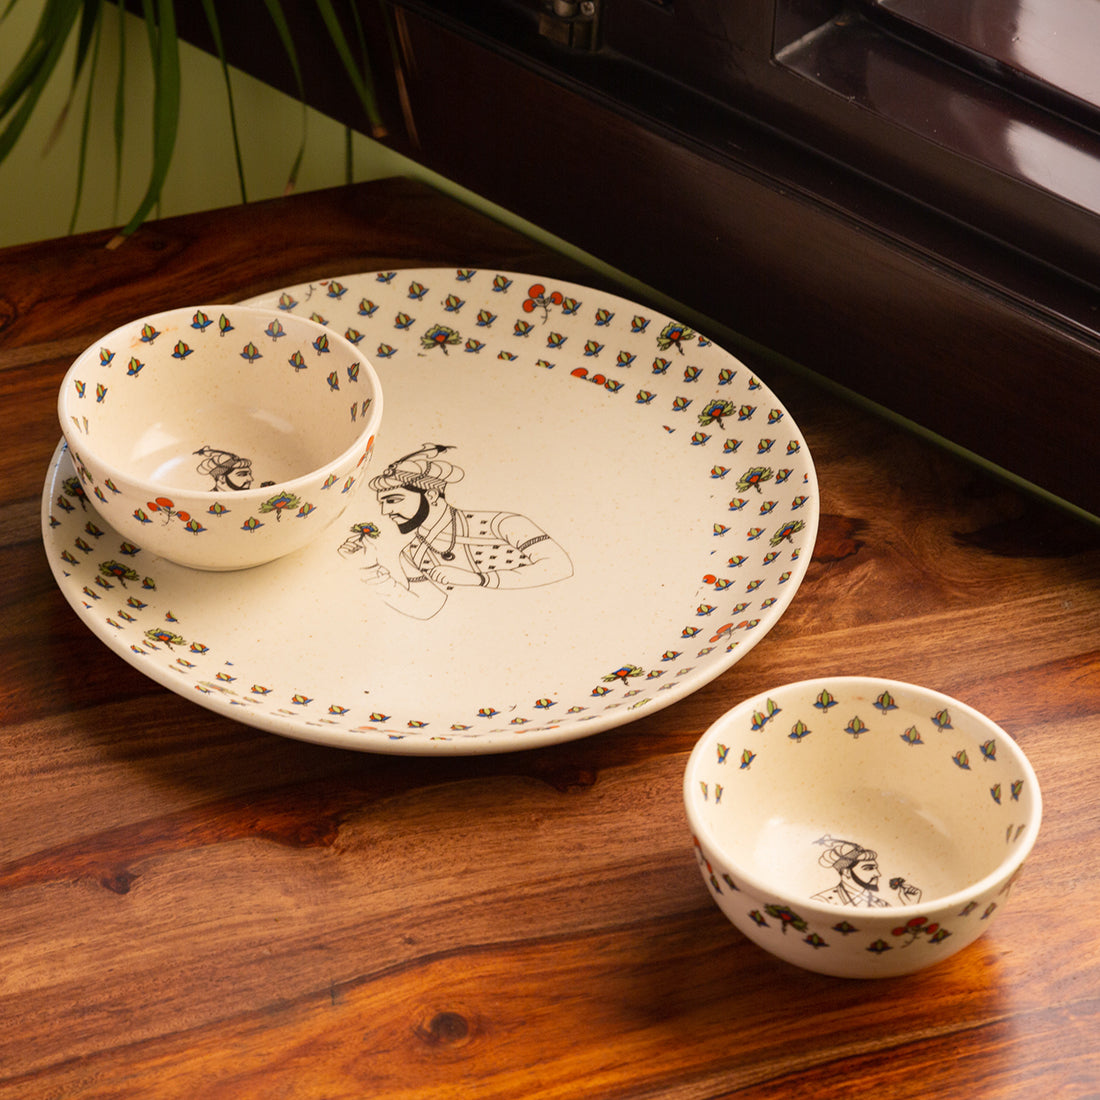 'Daawat-e-Taj' Handcrafted Ceramic Dinner Plate With Dinner Bowls/Katoris (3 Pieces, Serving for 1, Microwave Safe)